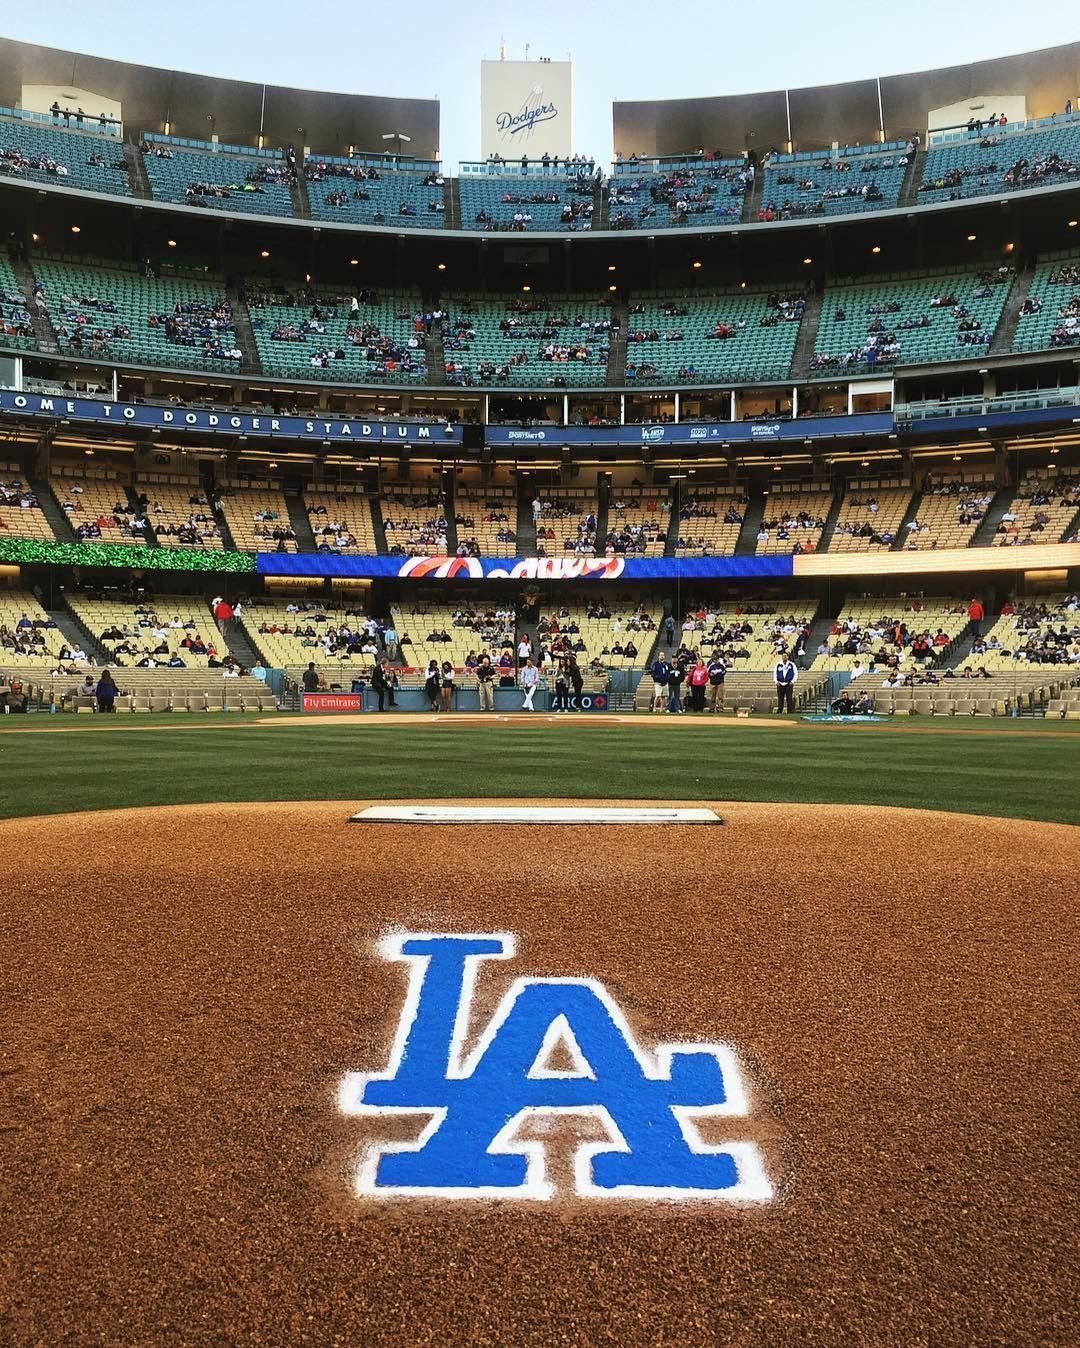 What Time Is The La Dodger Game Today: View From The Bump #Dodgers #thisislosangeles #openingday